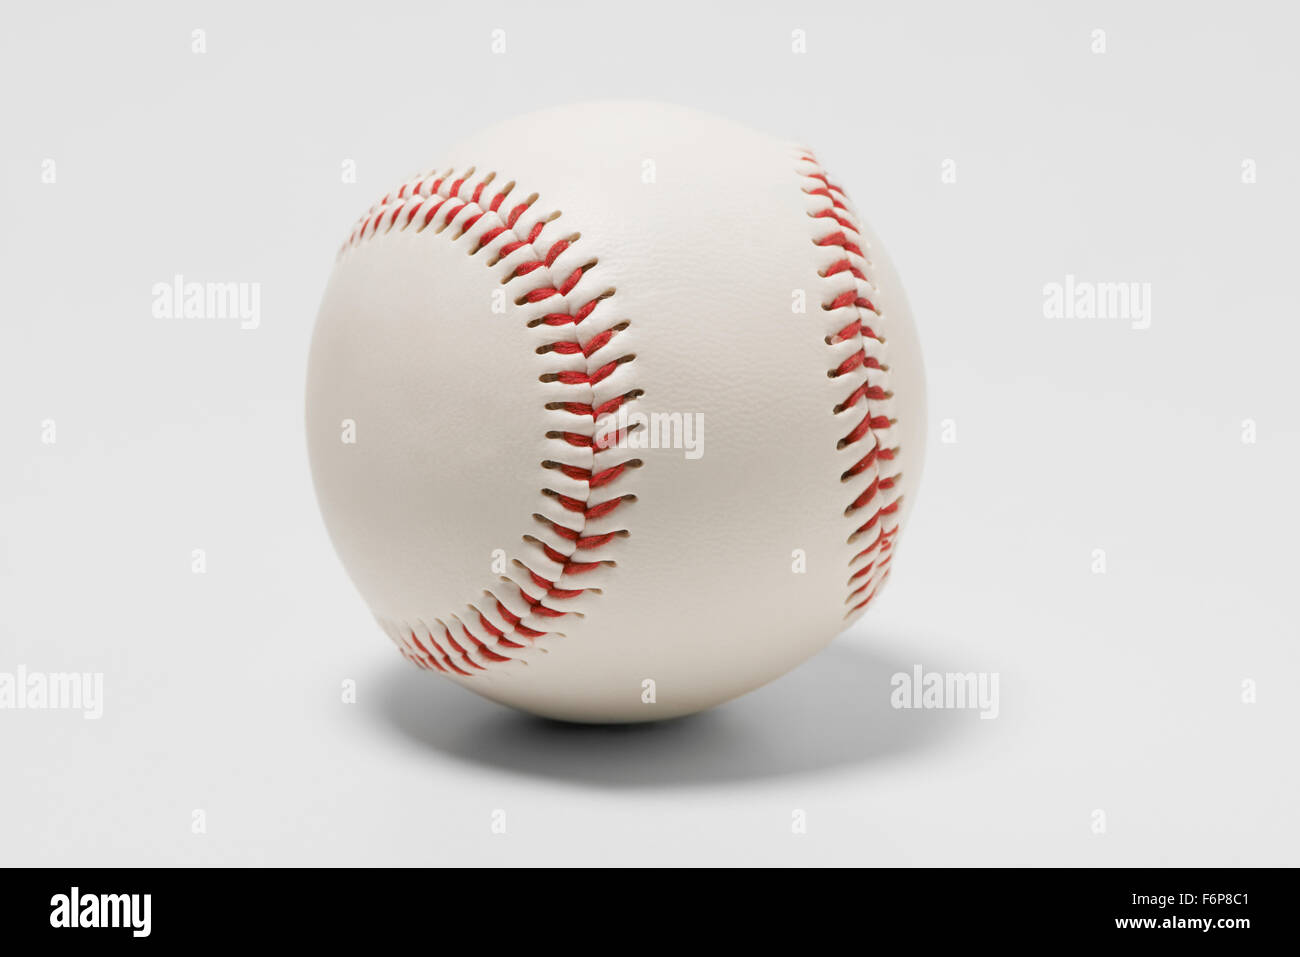 American Baseball with Red Stitching Stock Photo